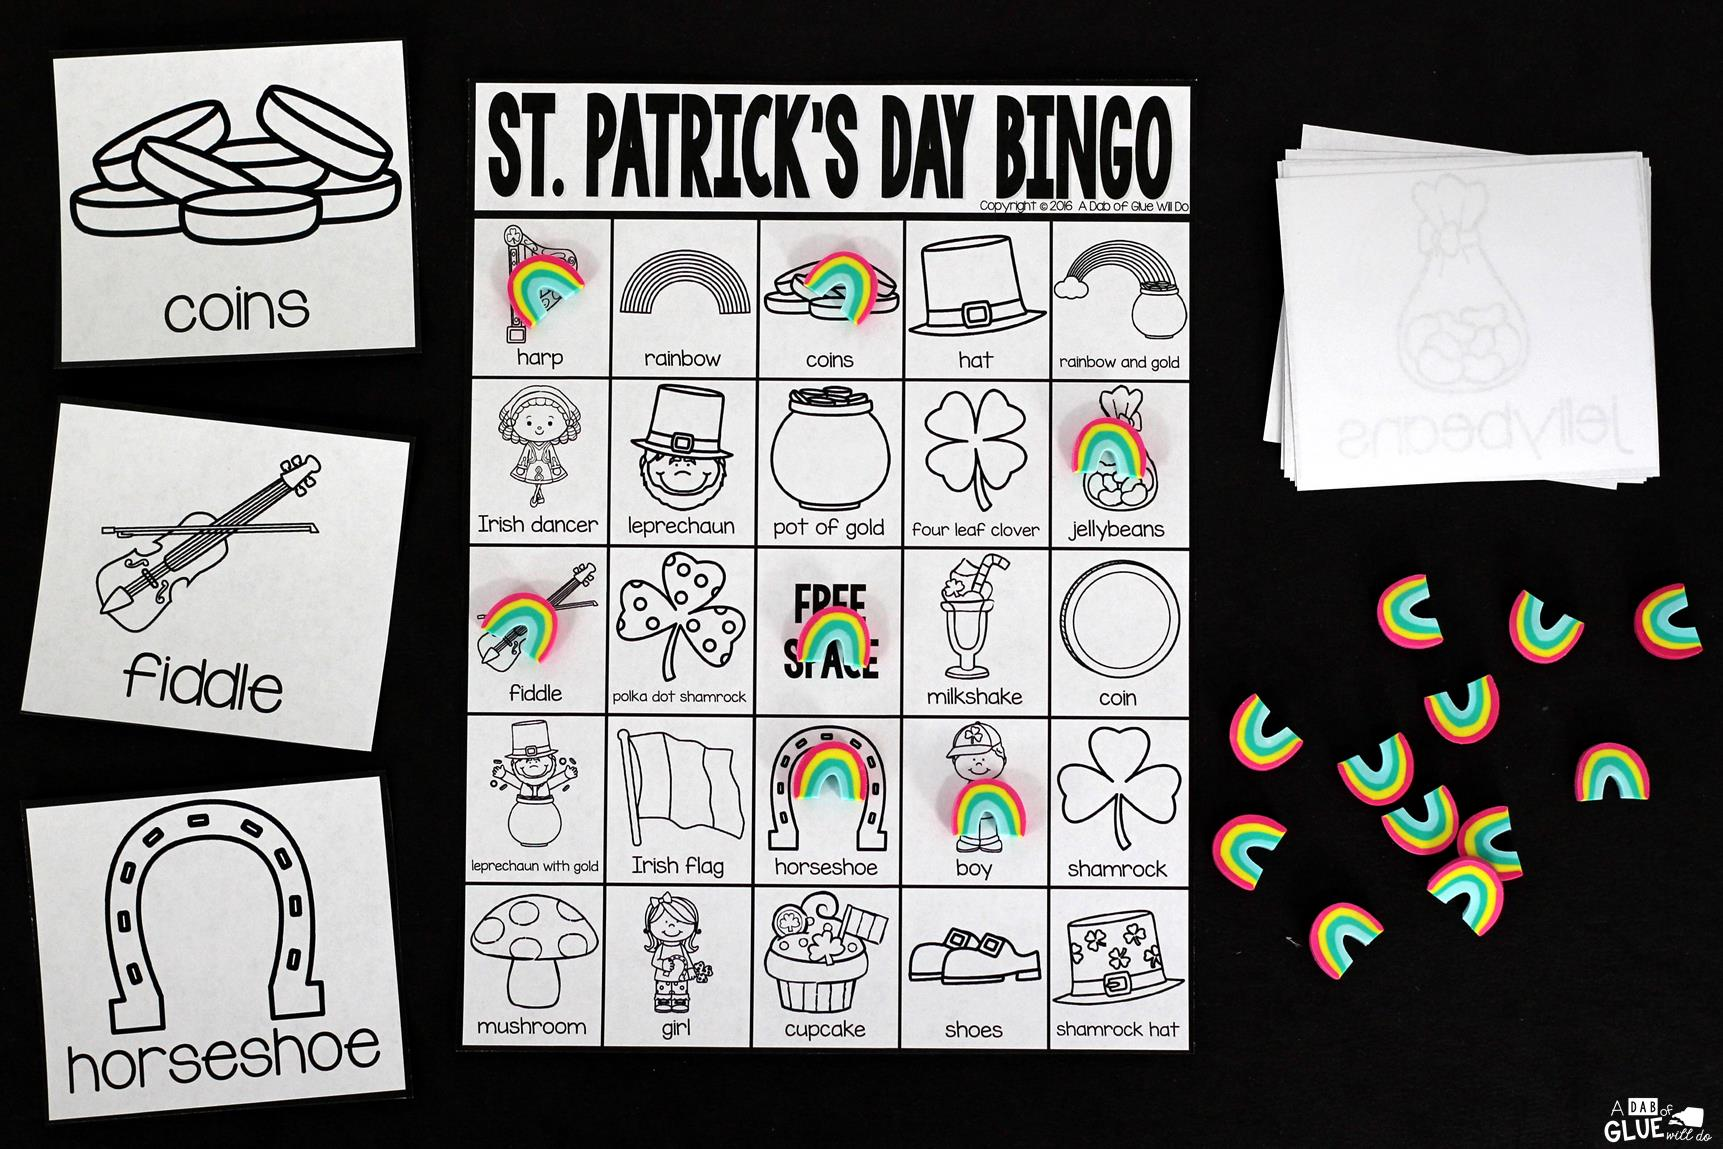 image relating to St Patrick's Day Bingo Printable named Bingo Sheets for St. Patricks Working day -